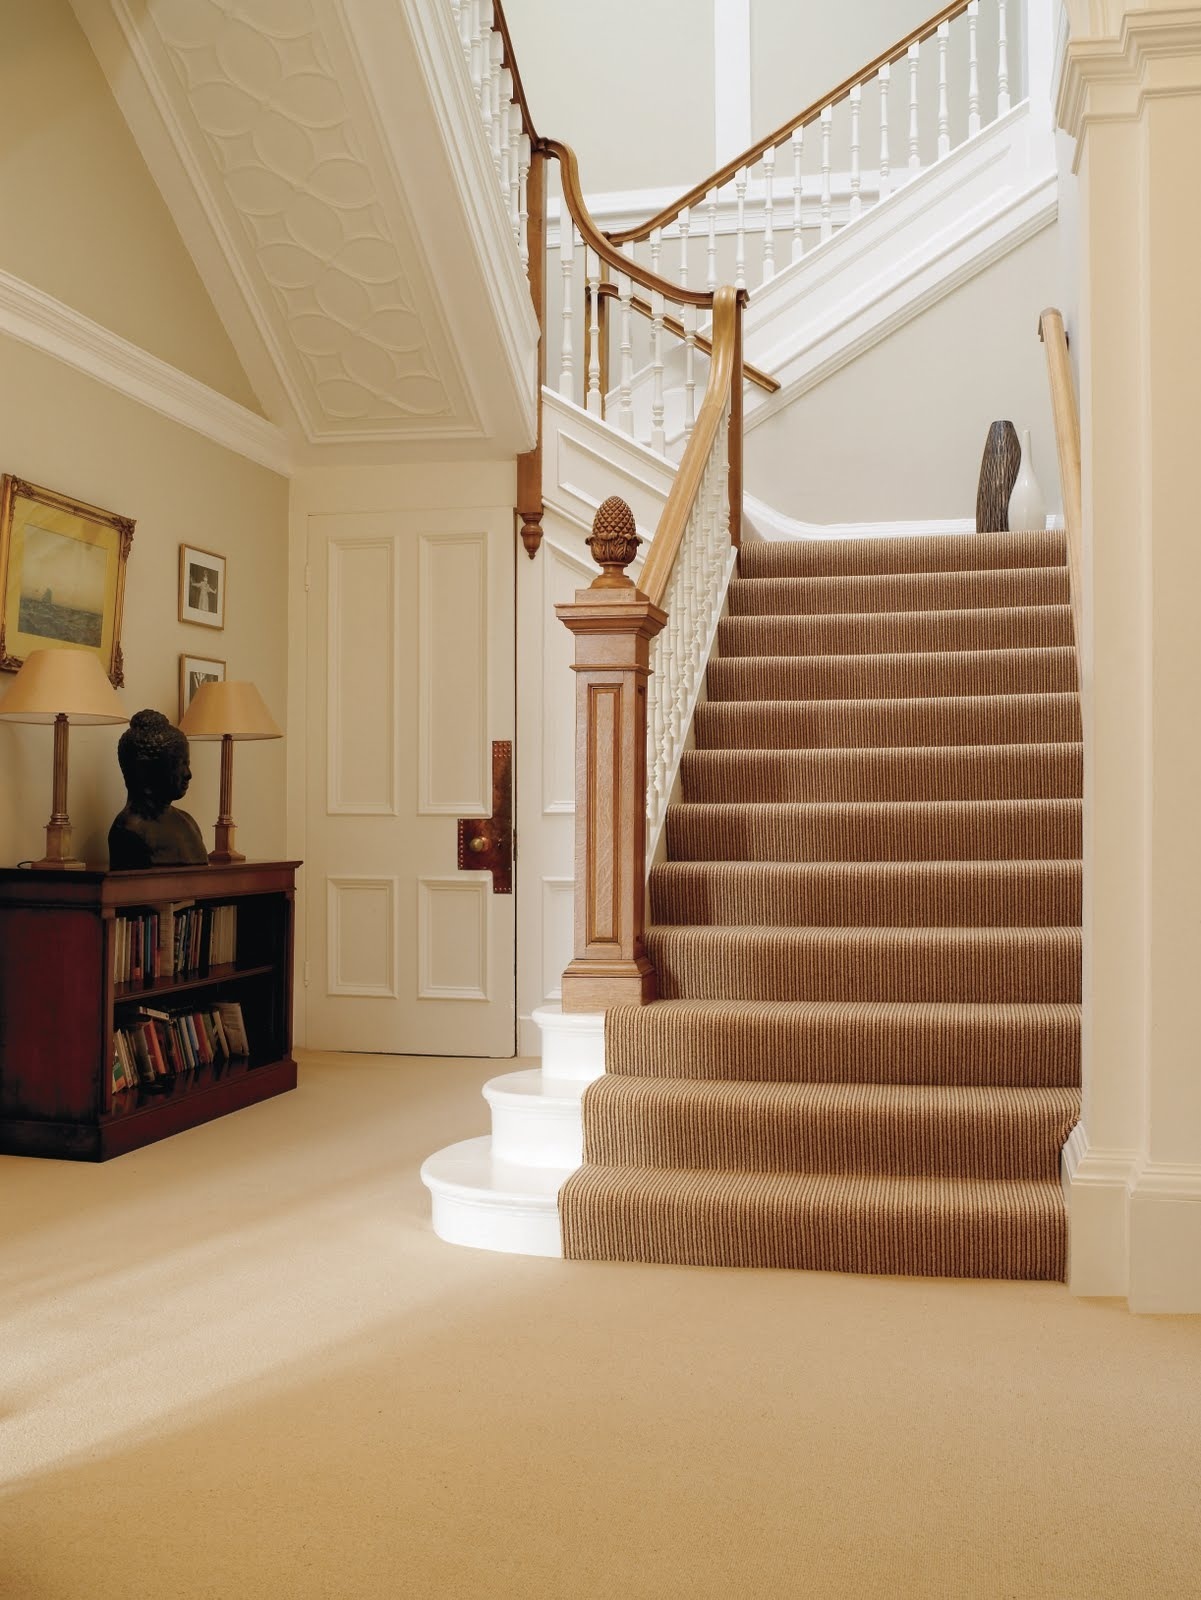 Clean Your Carpet Stairs Yourself – Check Out These Easy | Loose Carpet On Stairs | Runner | Fixing | Stair Treads | Stair Nosing | Laminate Flooring